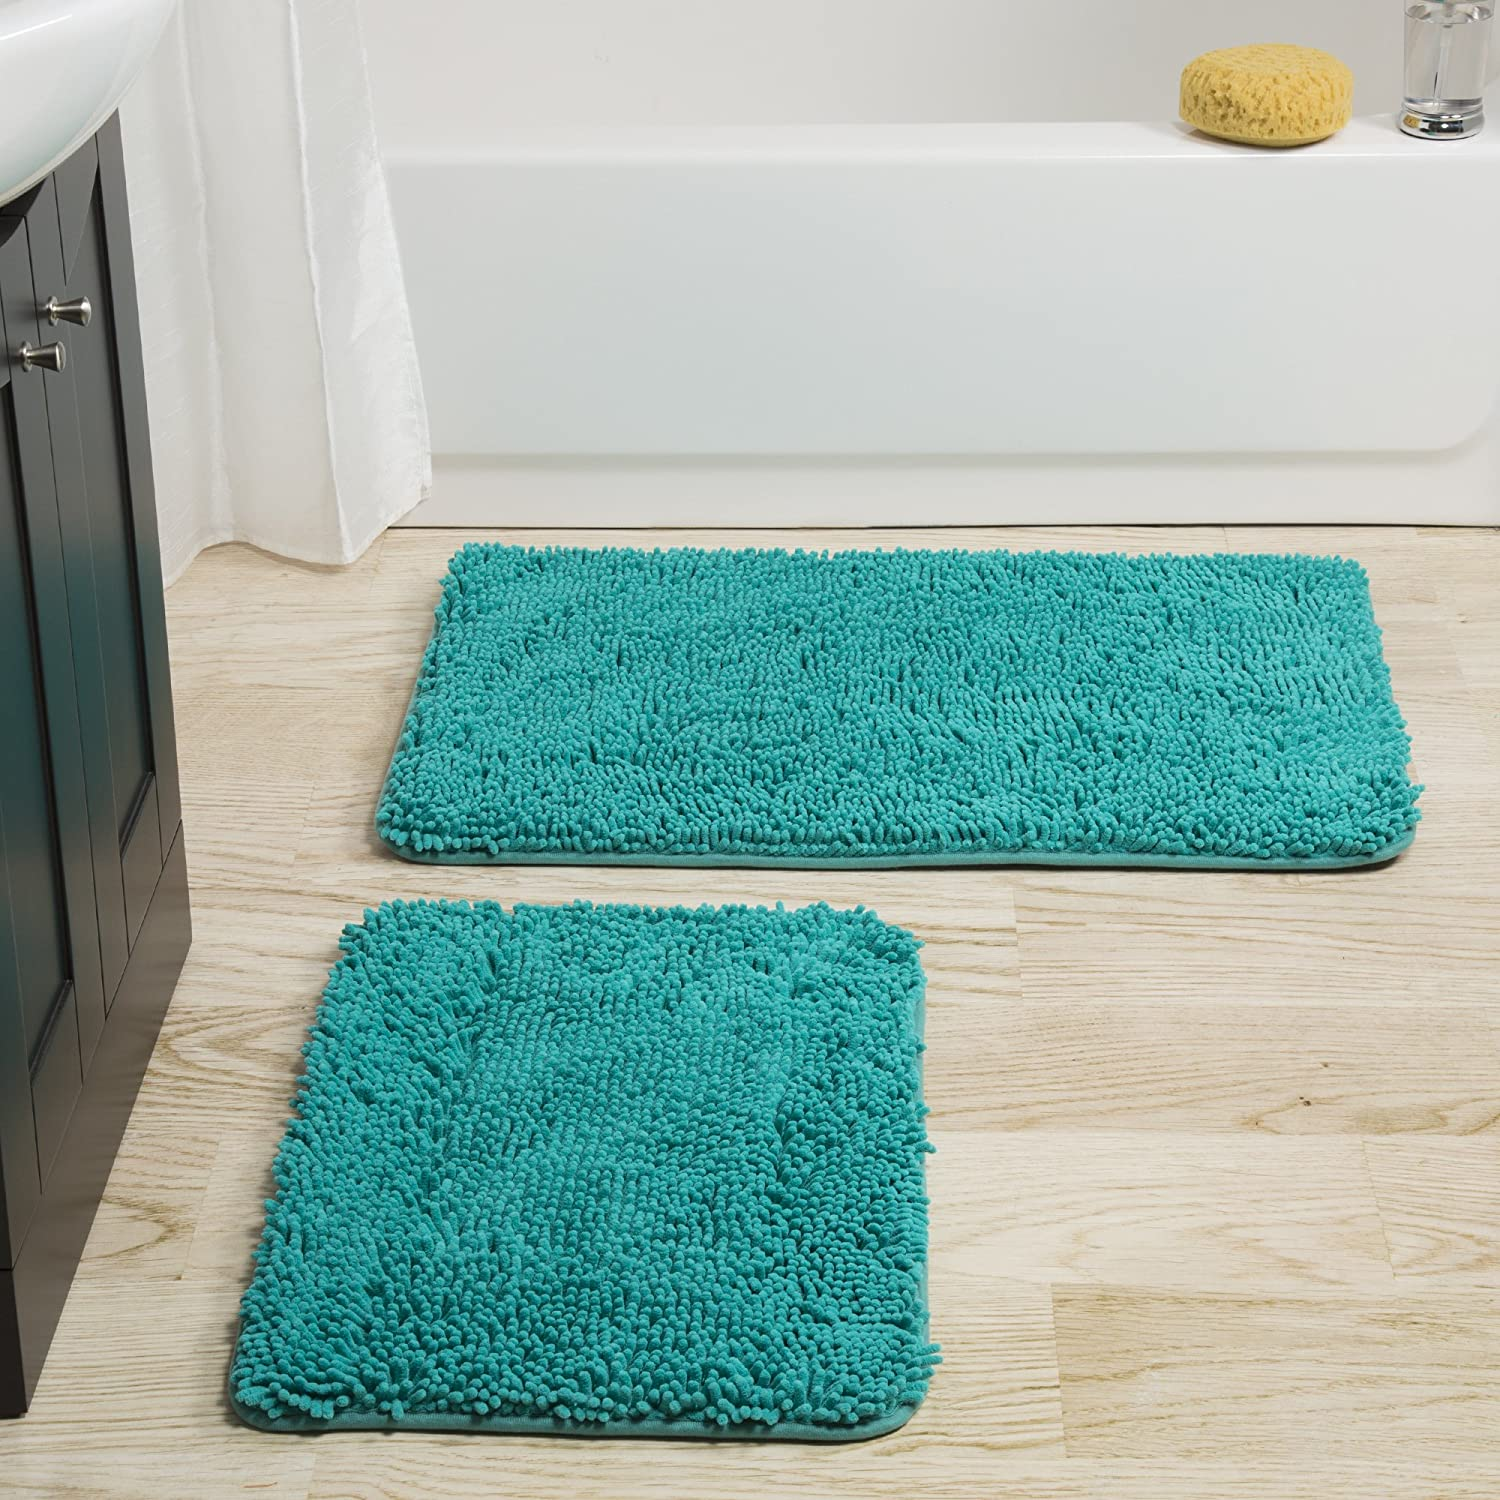 Bedford Home 2 Piece Memory Foam Shag Bath Mat - Blue 67A-98950